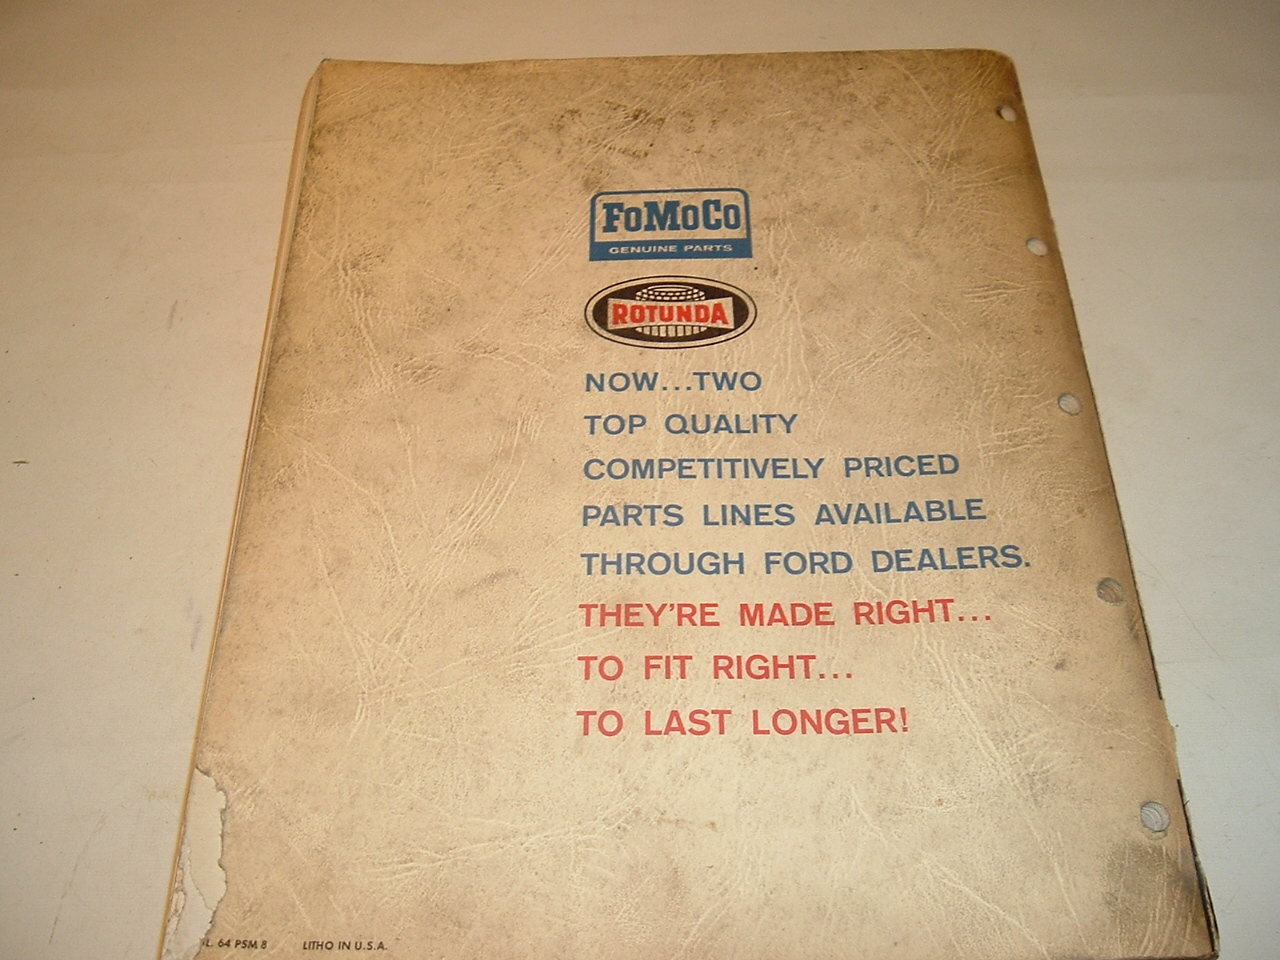 1964 Ford Autolite Quick Reference parts Catalog (A 1964 Ford Q ref)